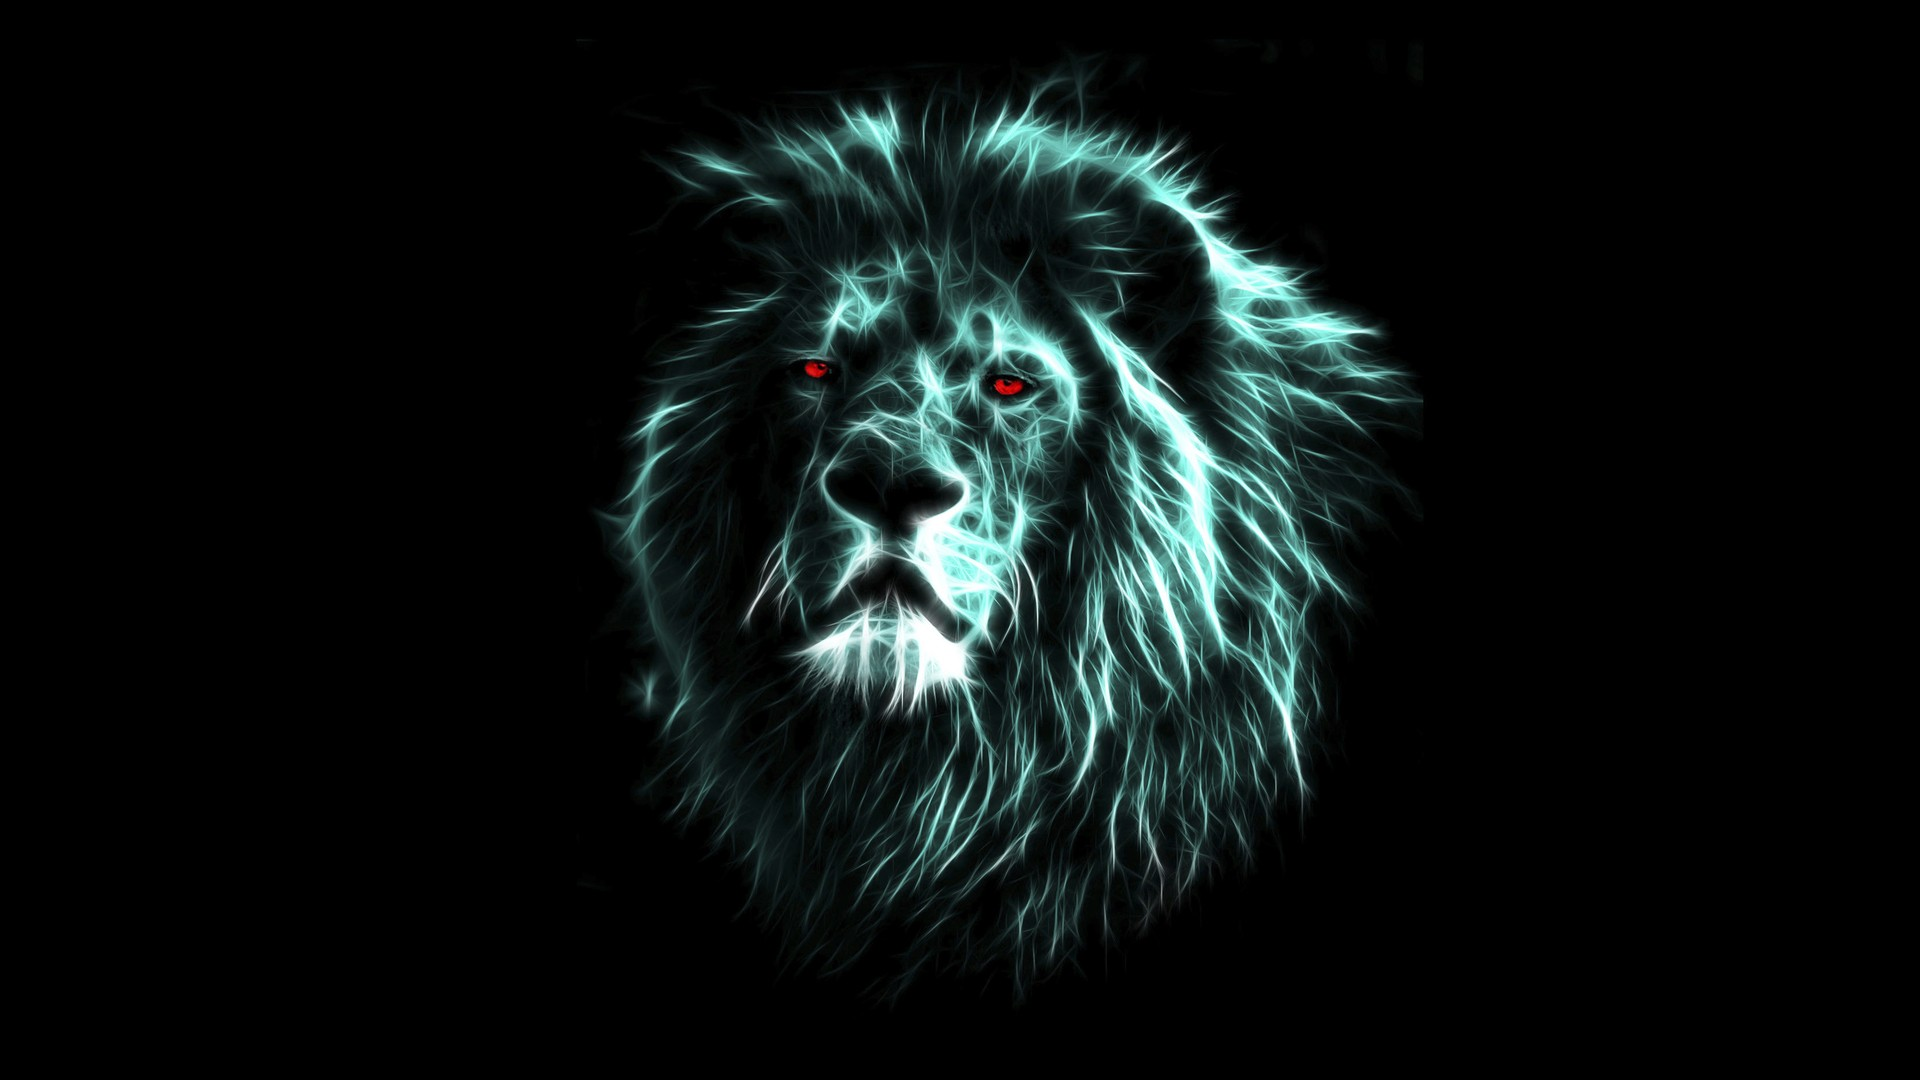 Lion Wallpaper HD 1 Download Free Amazing Wallpapers For